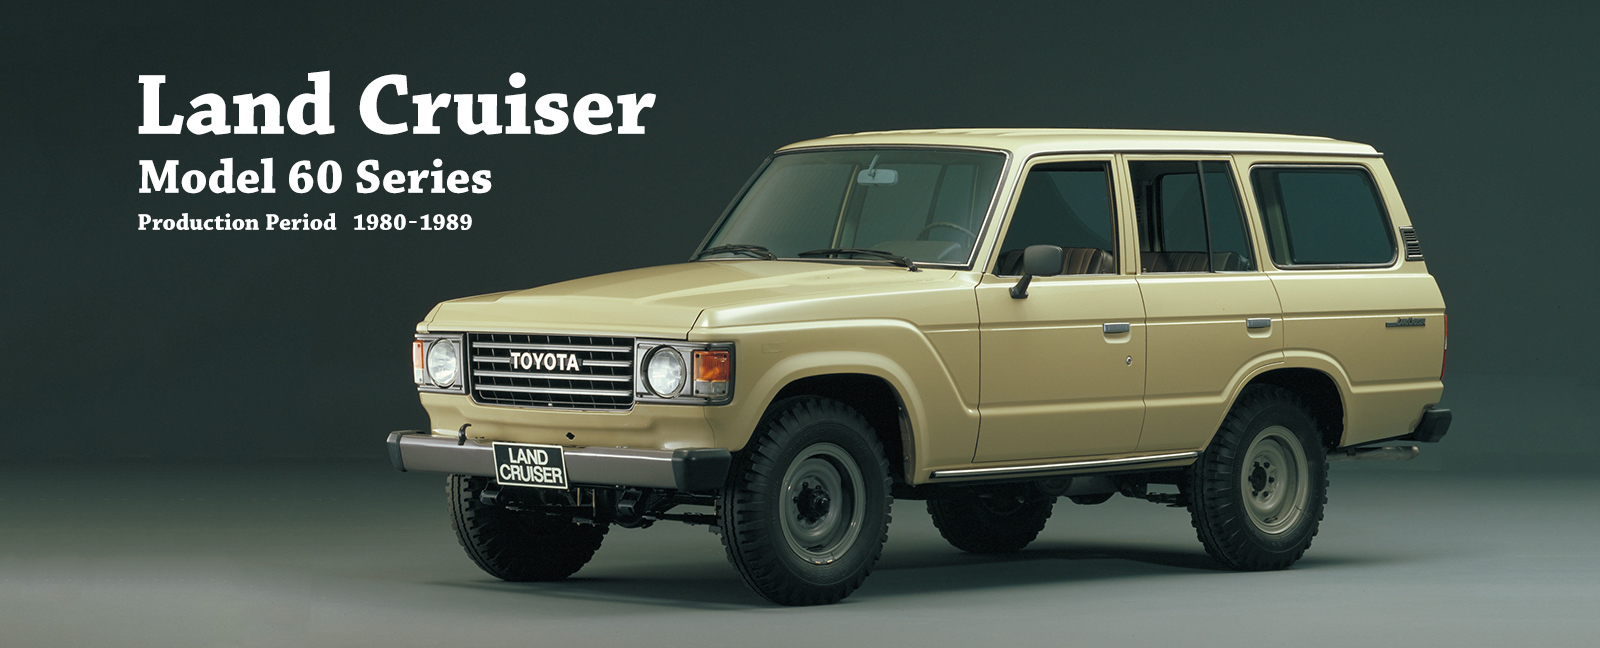 Toyota Land Cruiser Diesel >> Toyota Global Site | Land Cruiser | Model 60 Series_01